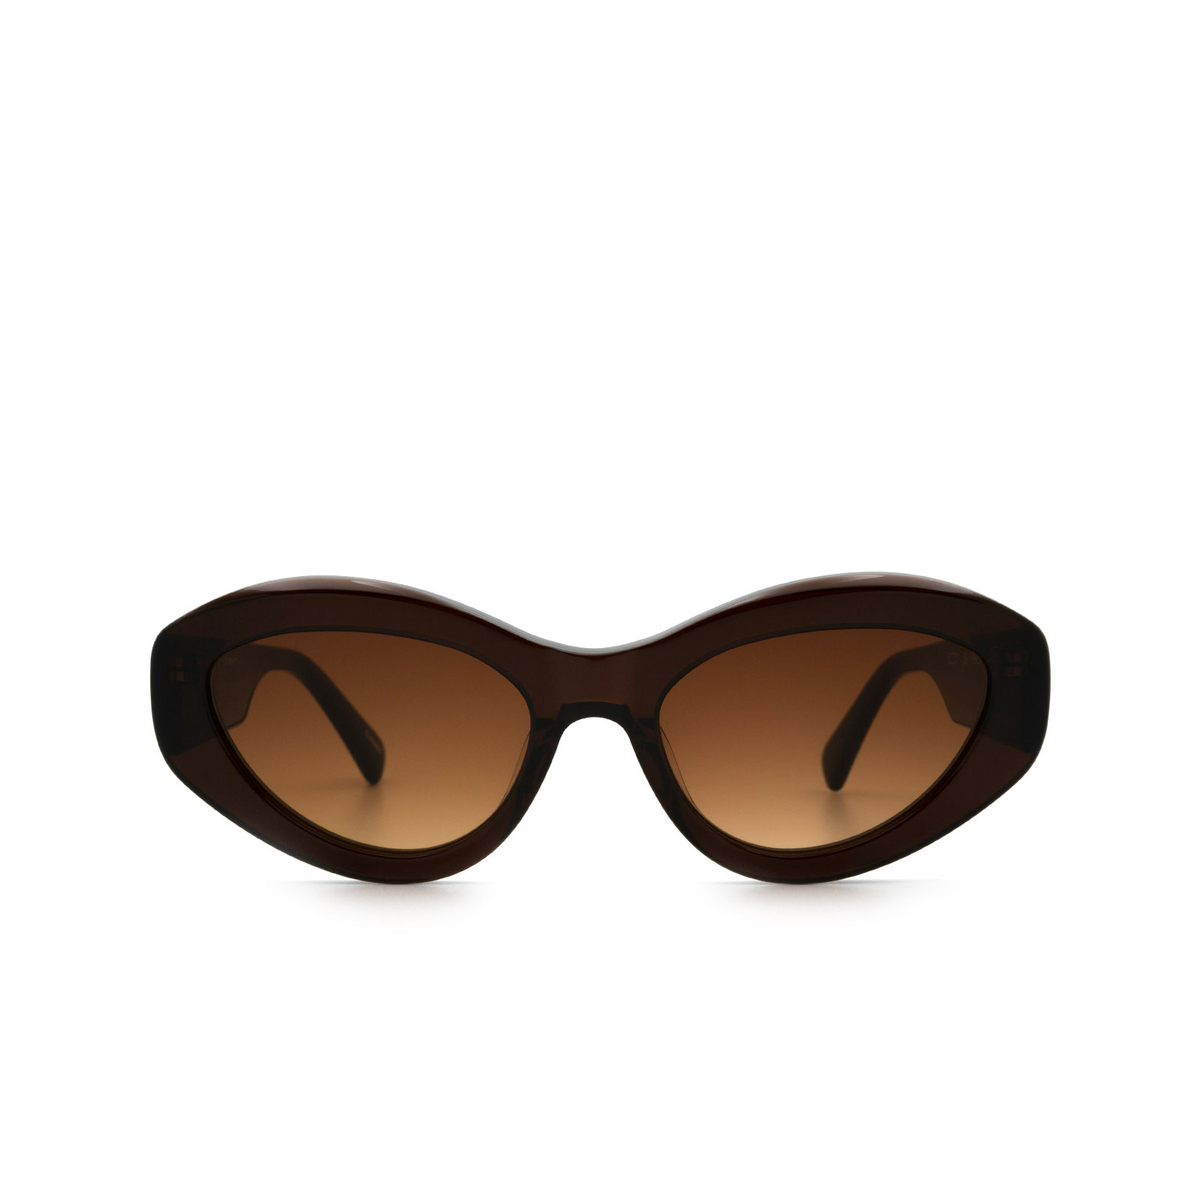 Chimi® Cat-eye Sunglasses: 09 color Brown.